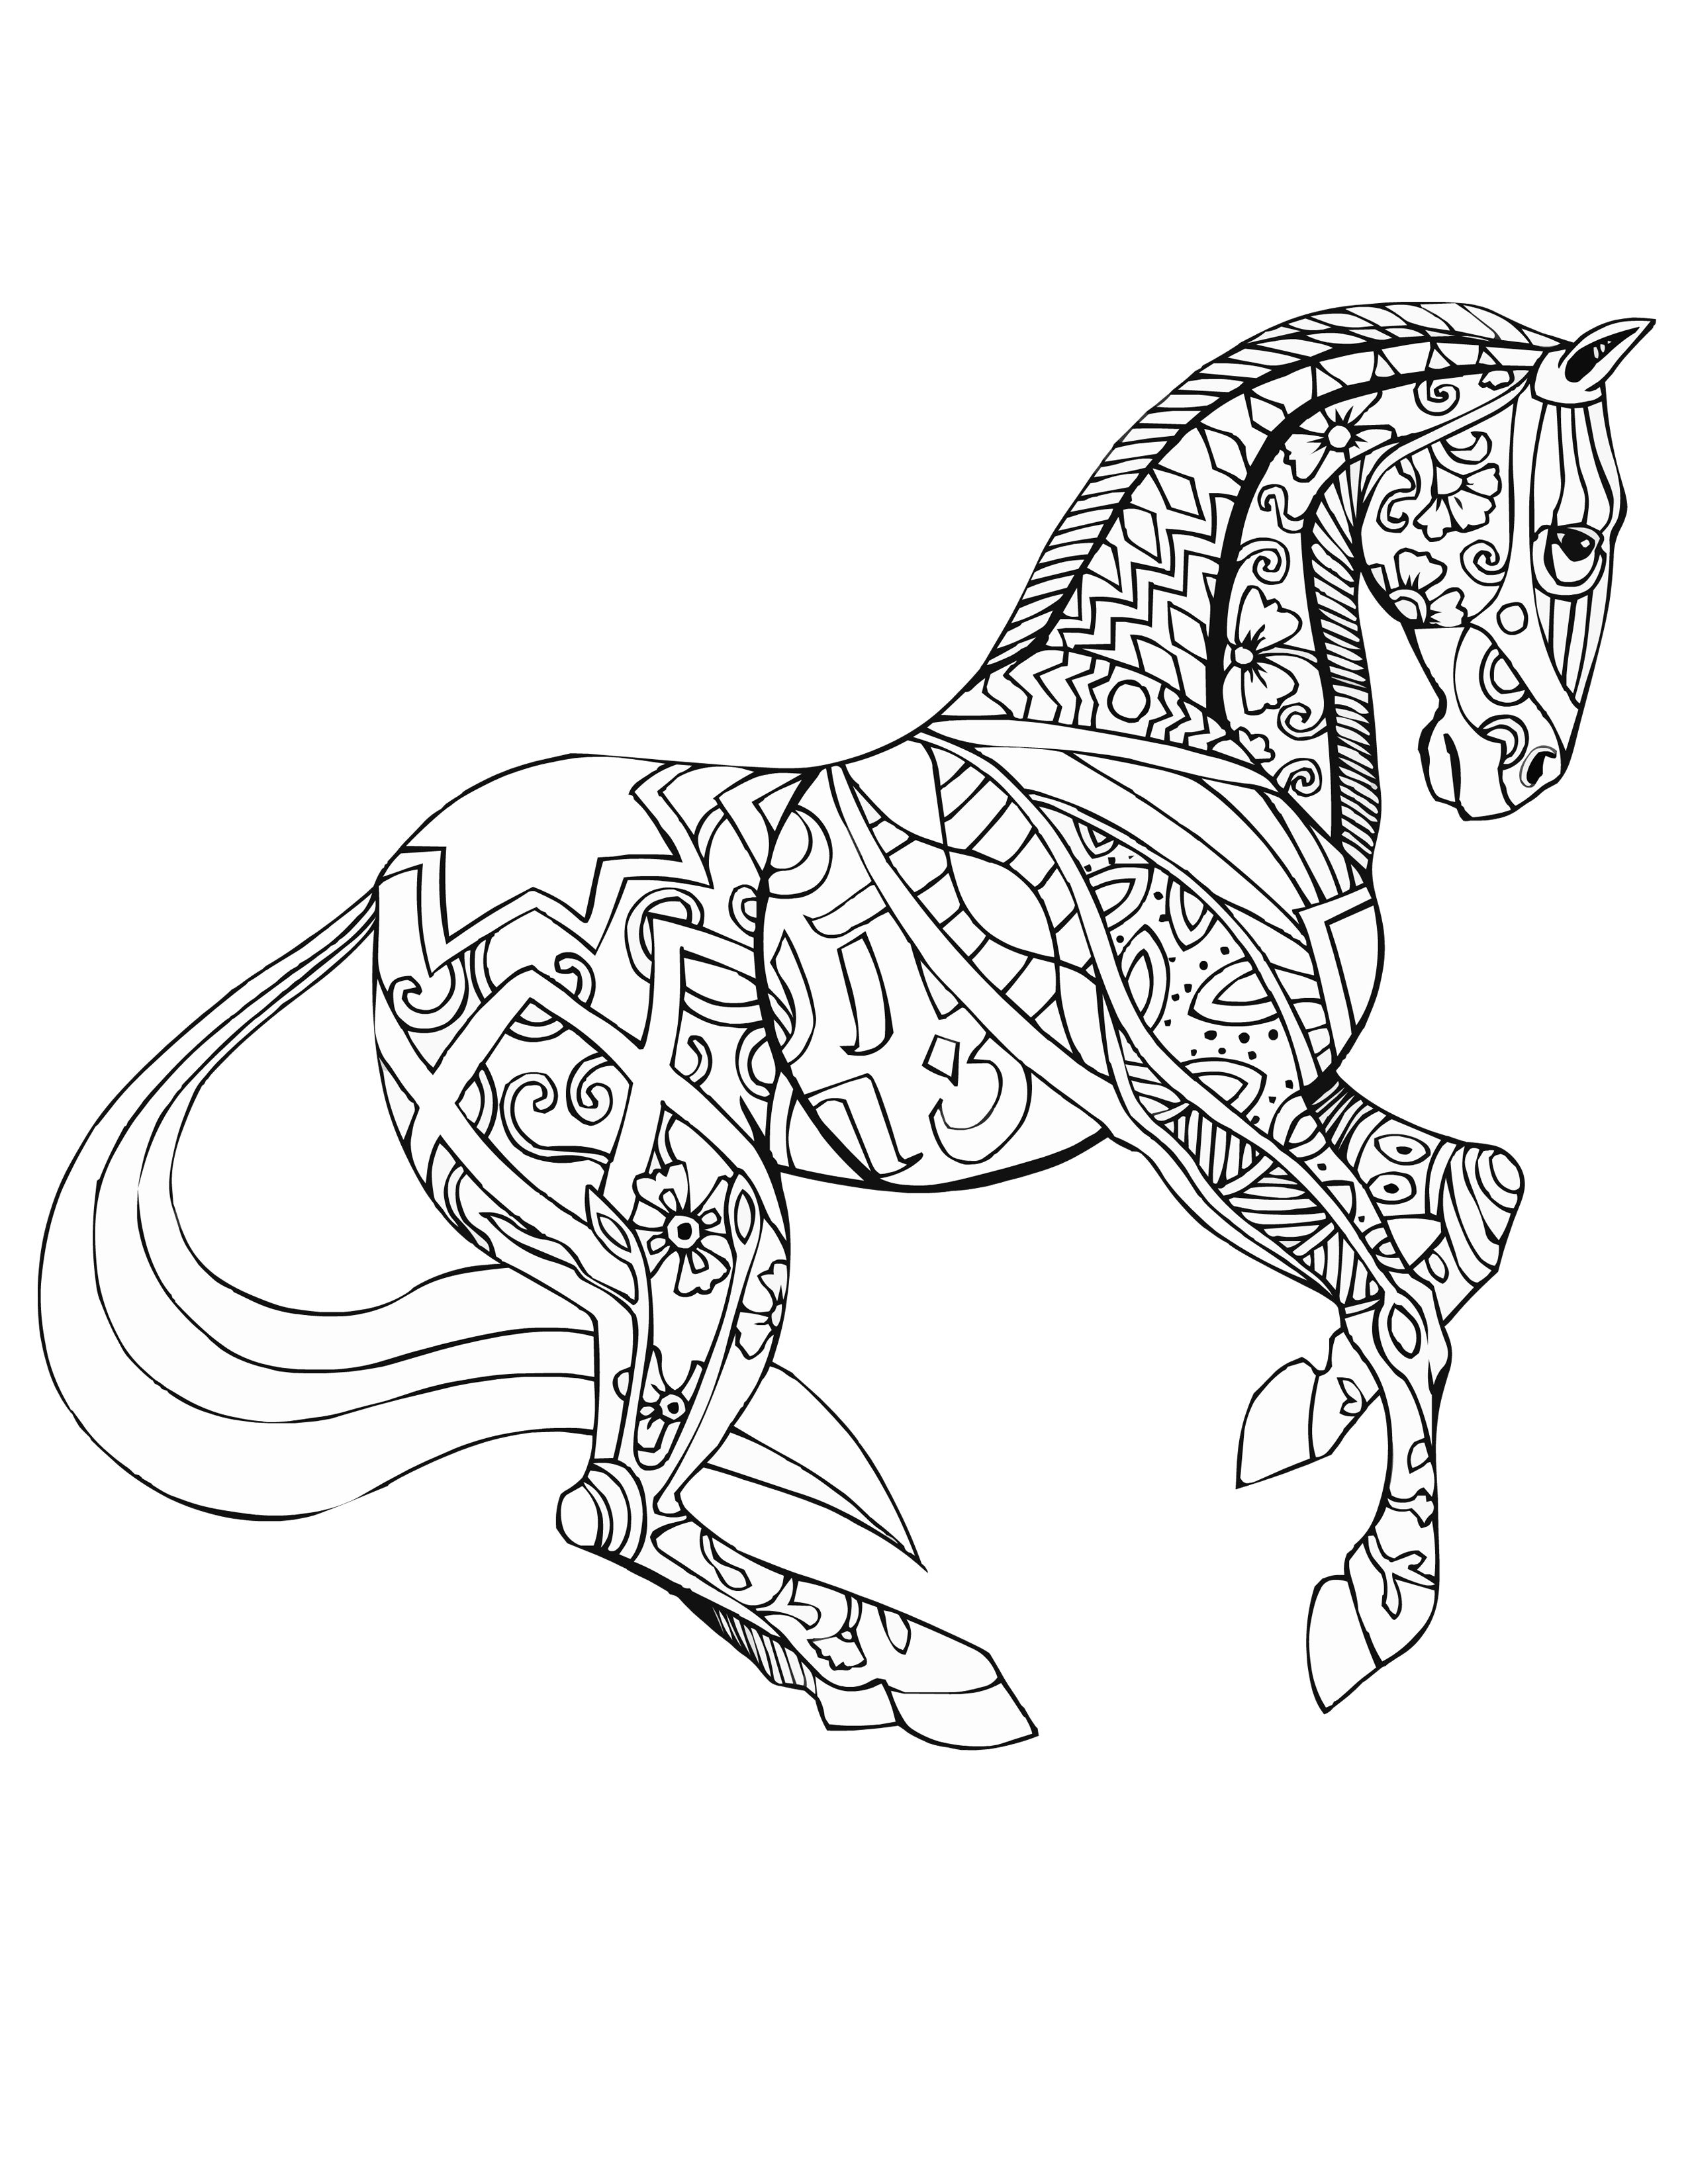 Horse Free Download